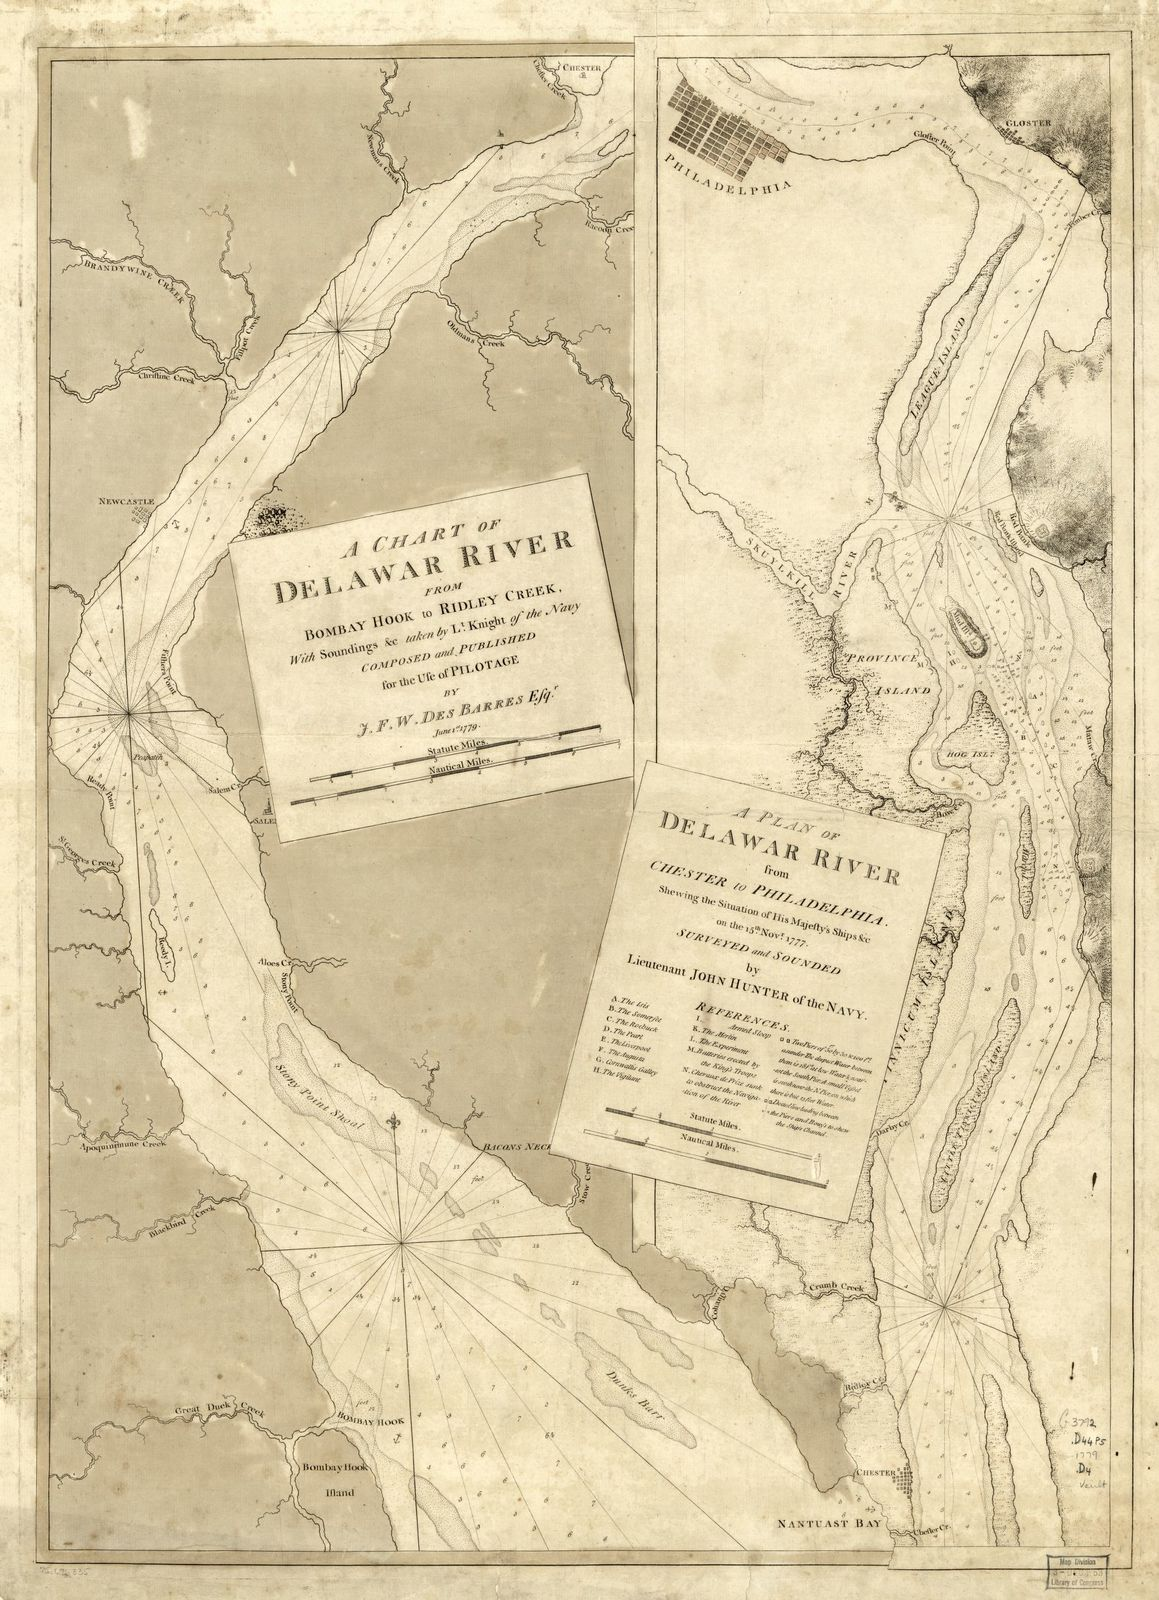 A chart of Delawar River from Bombay Hook to Ridley Creek, with soundings &c taken by Lt. Knight of the Navy.